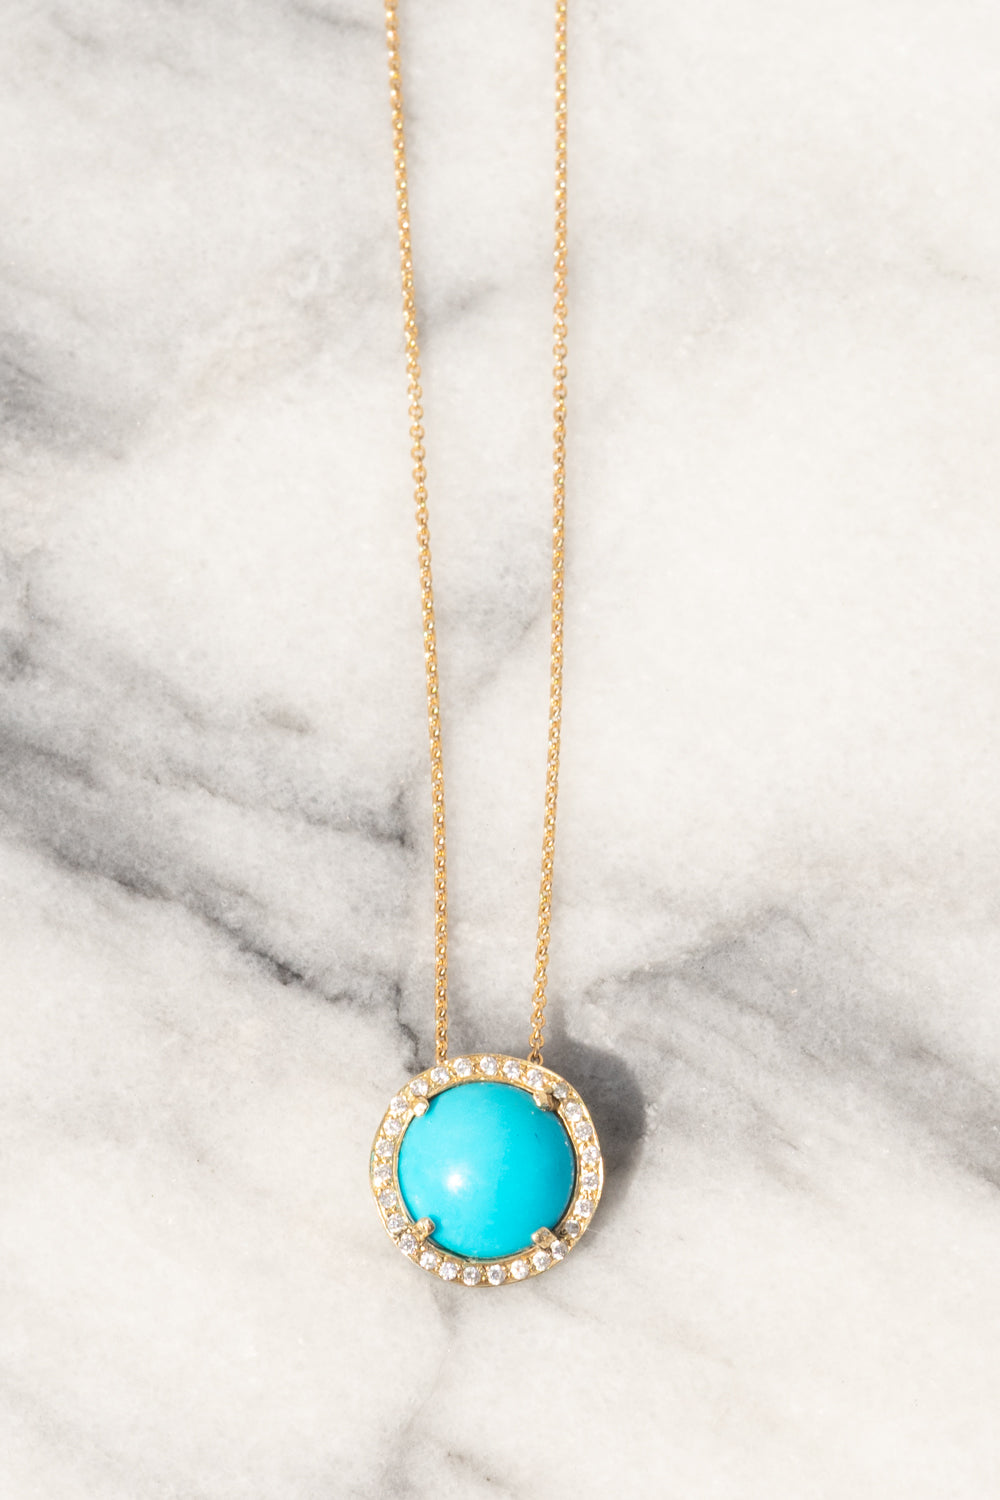 Janna Conner Sleeping Beauty Turquoise Necklace with Diamond Pavé 14K Yellow Gold